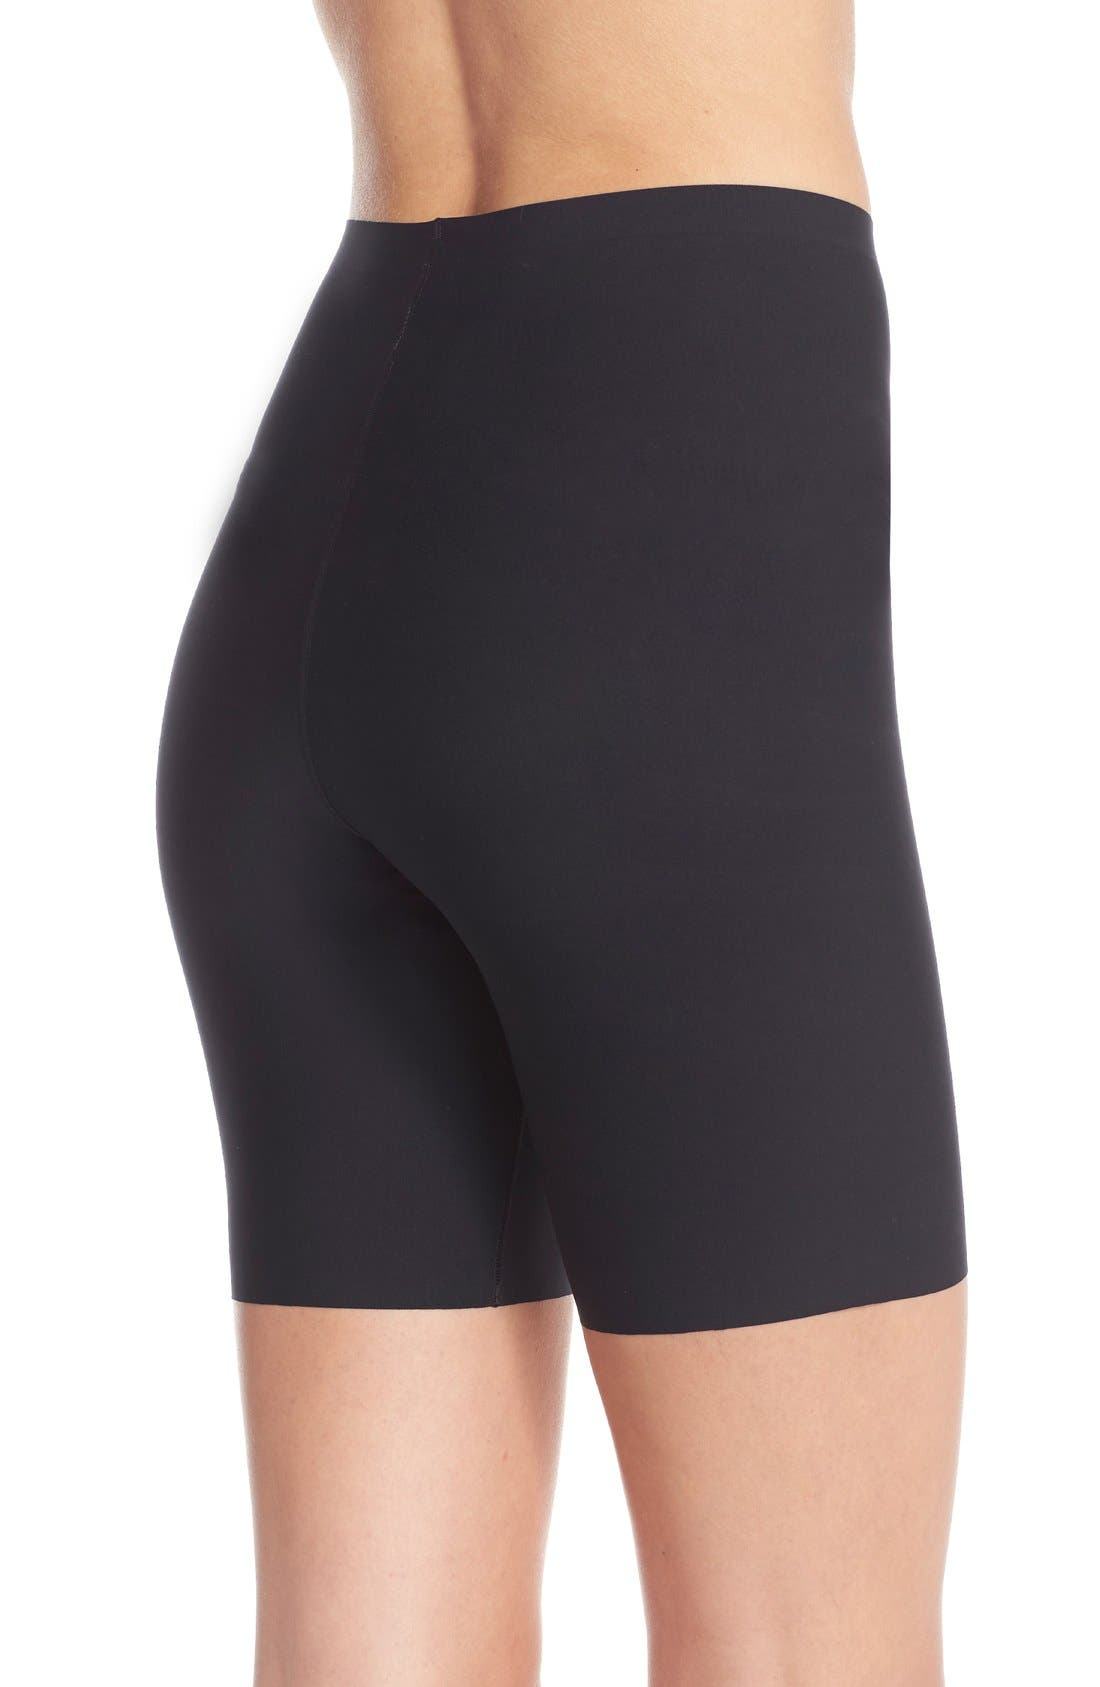 Thinstincts Mid Thigh Shorts,                             Alternate thumbnail 3, color,                             VERY BLACK